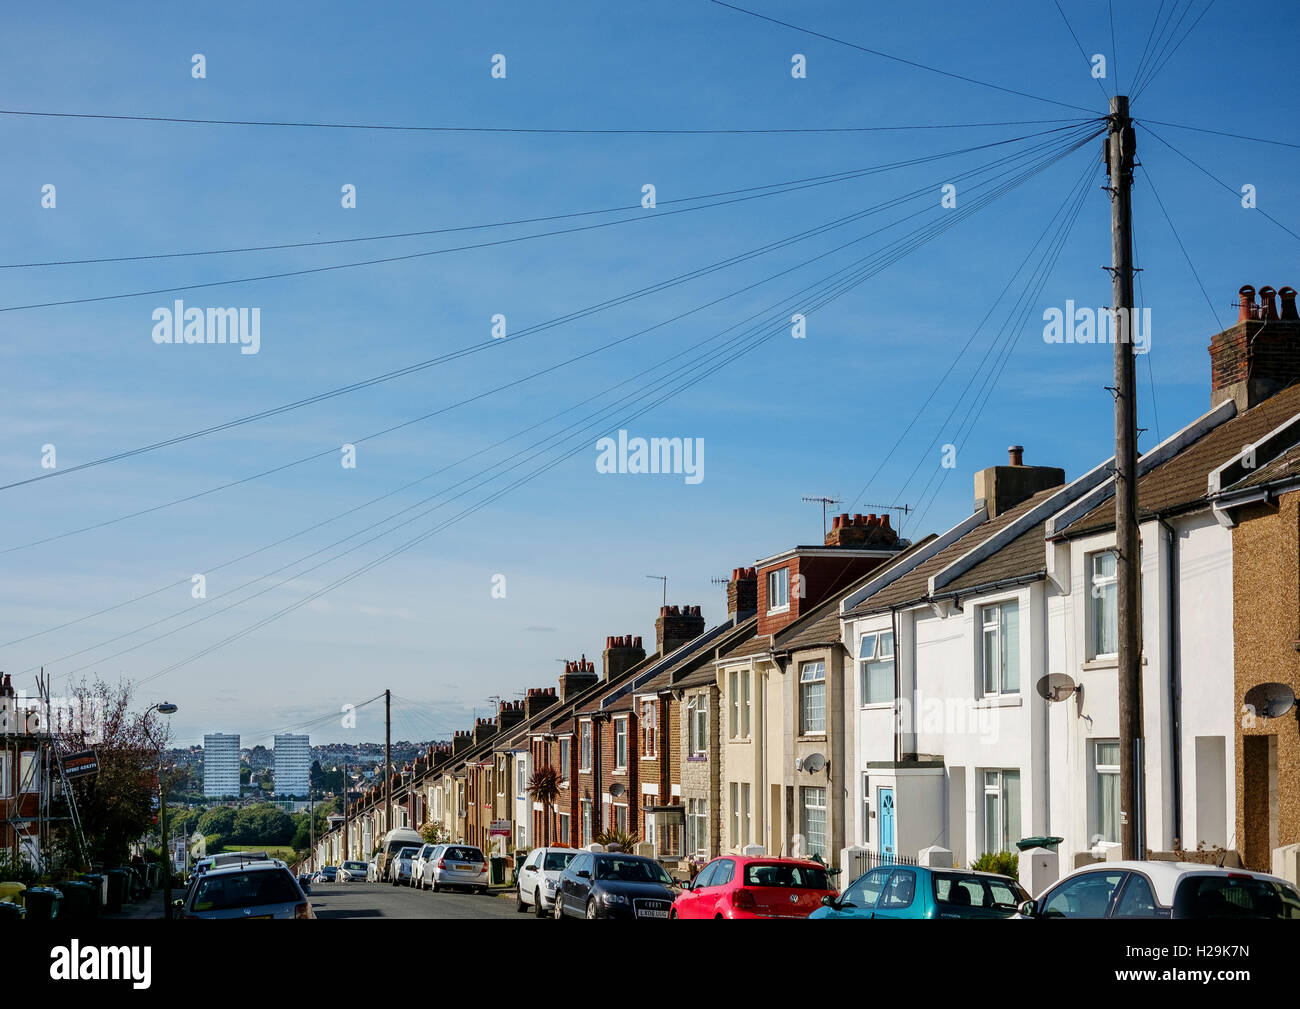 Phone Cables Stockfotos & Phone Cables Bilder - Alamy